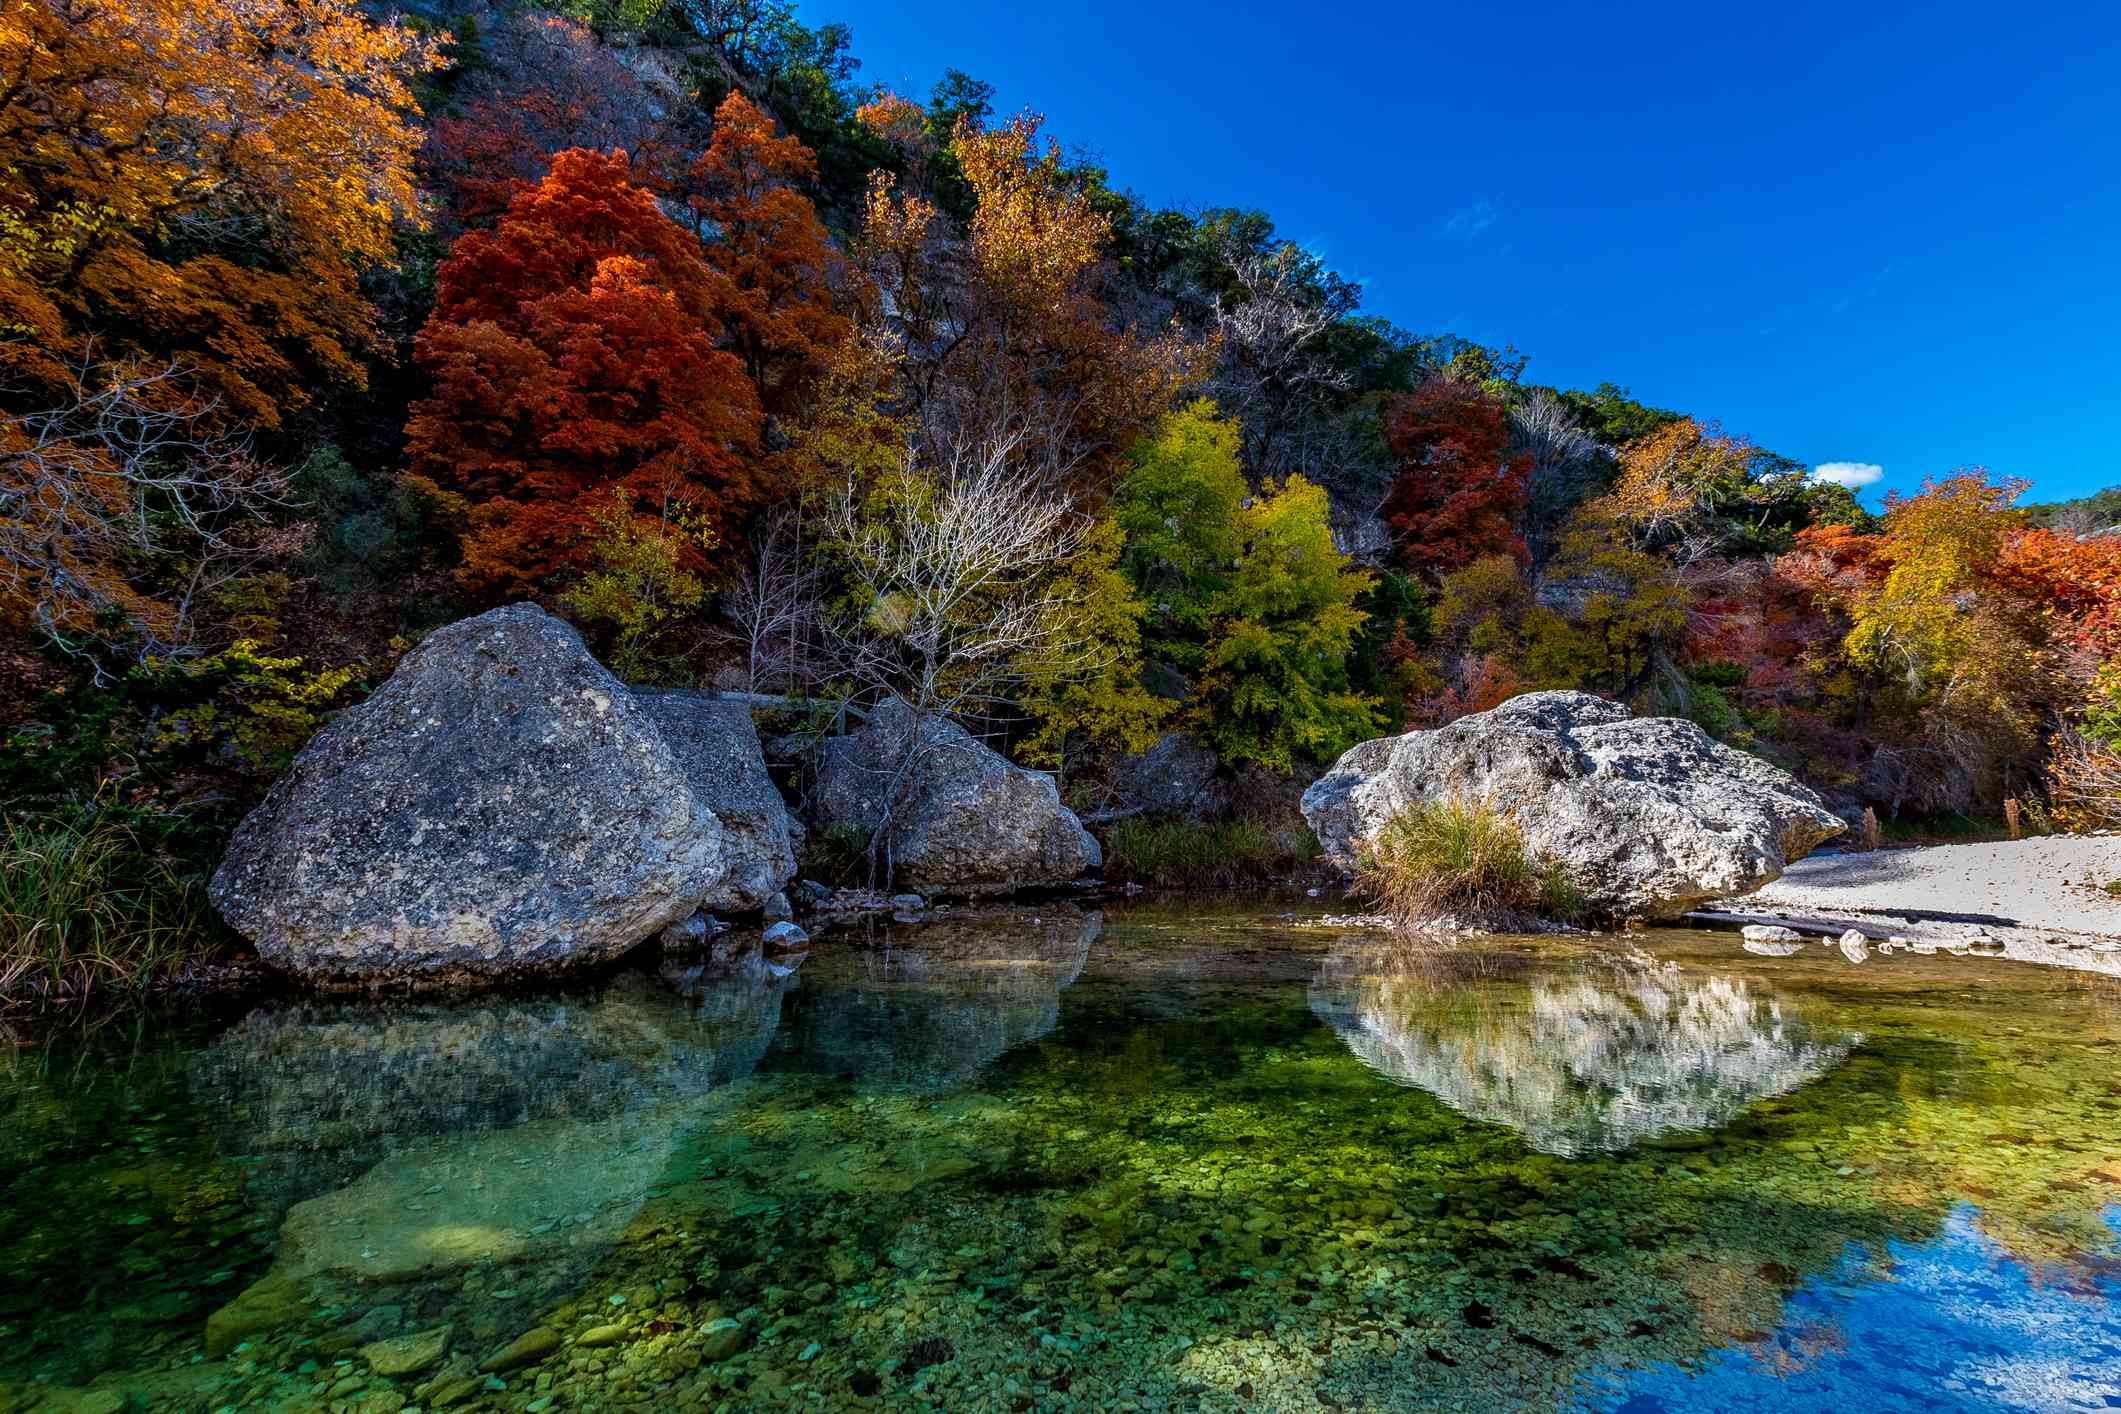 Crystal Clear Pool surrounded by several large boulders on Sabinal River with a lush forest of trees in bright fall foliage above at Lost Maples State Park, Texas